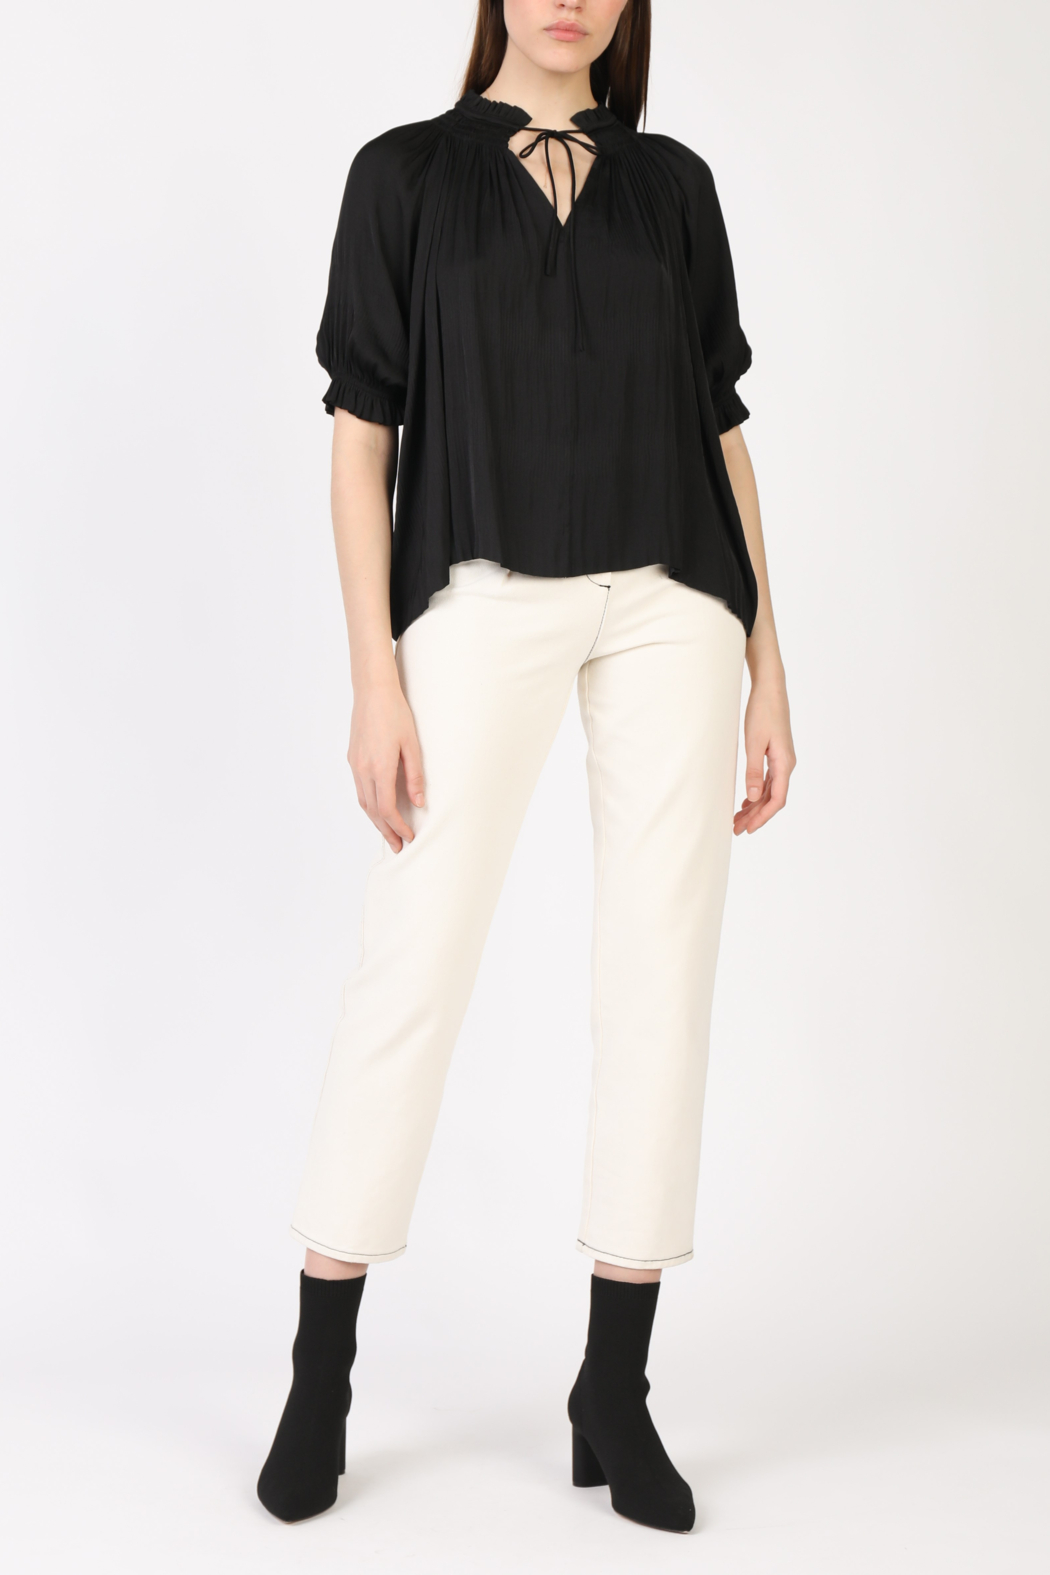 Current Air Angelic Pleated Blouse - Front Cropped Image